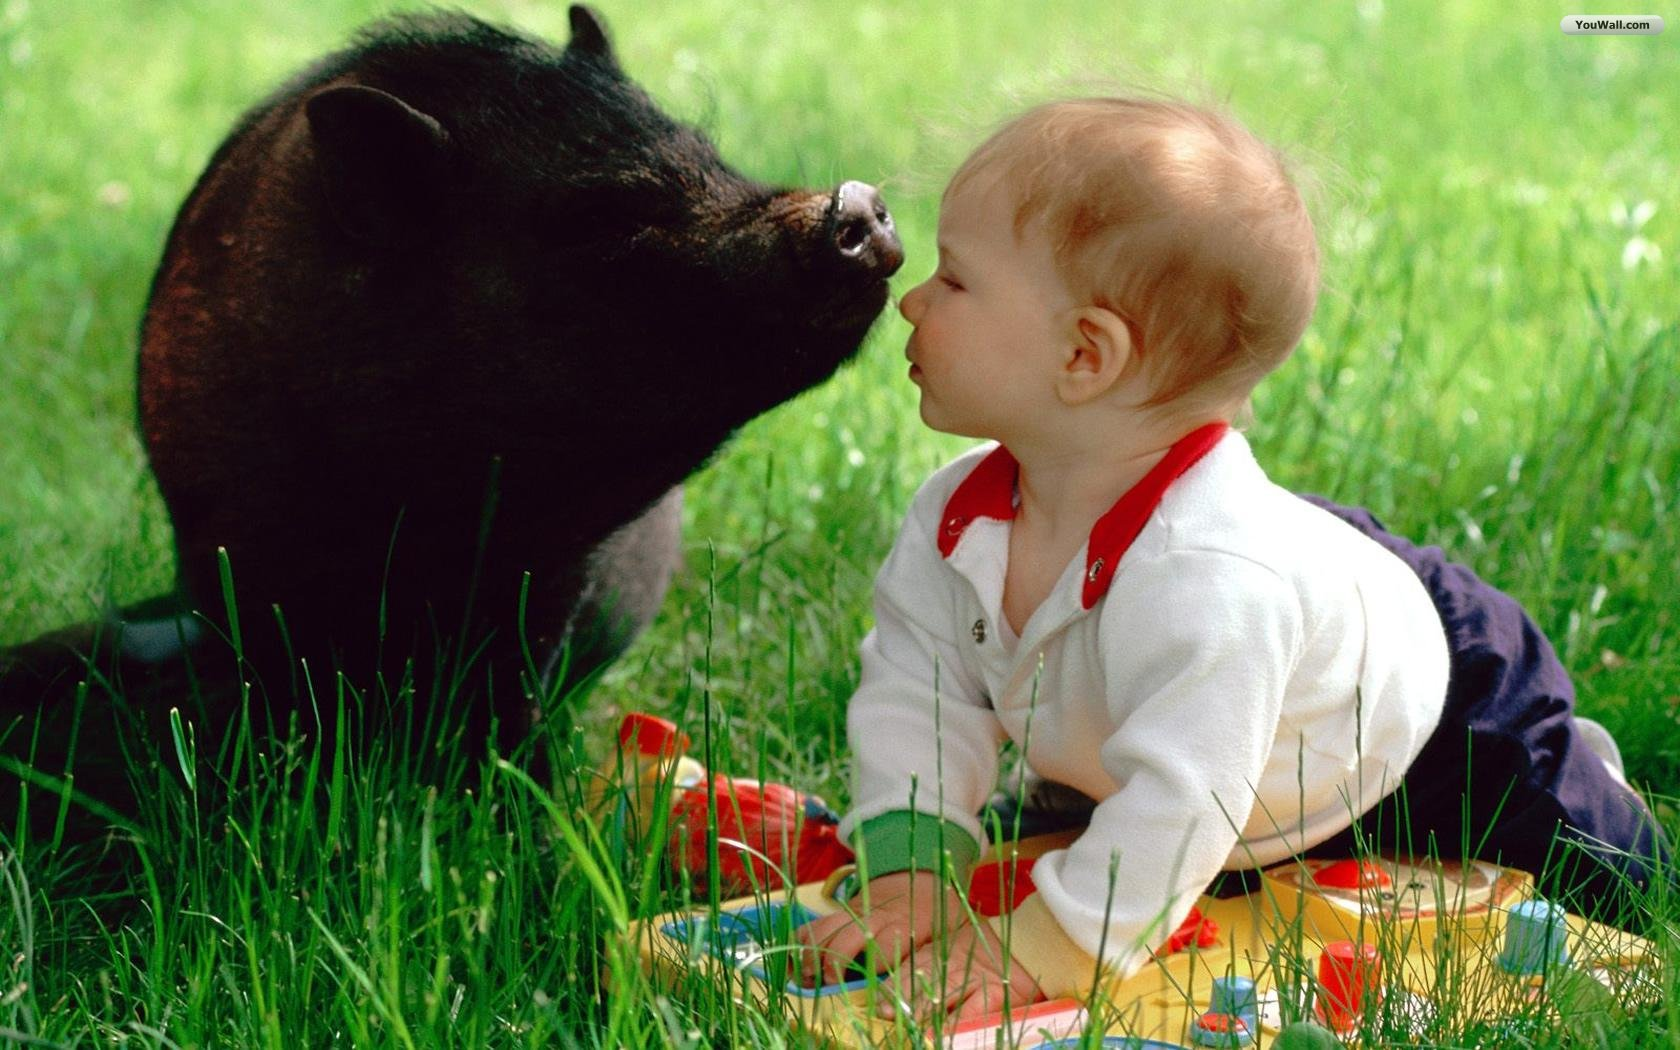 The Baby And Pig Wallpaper Wallpaperwallpapersfree 1680x1050